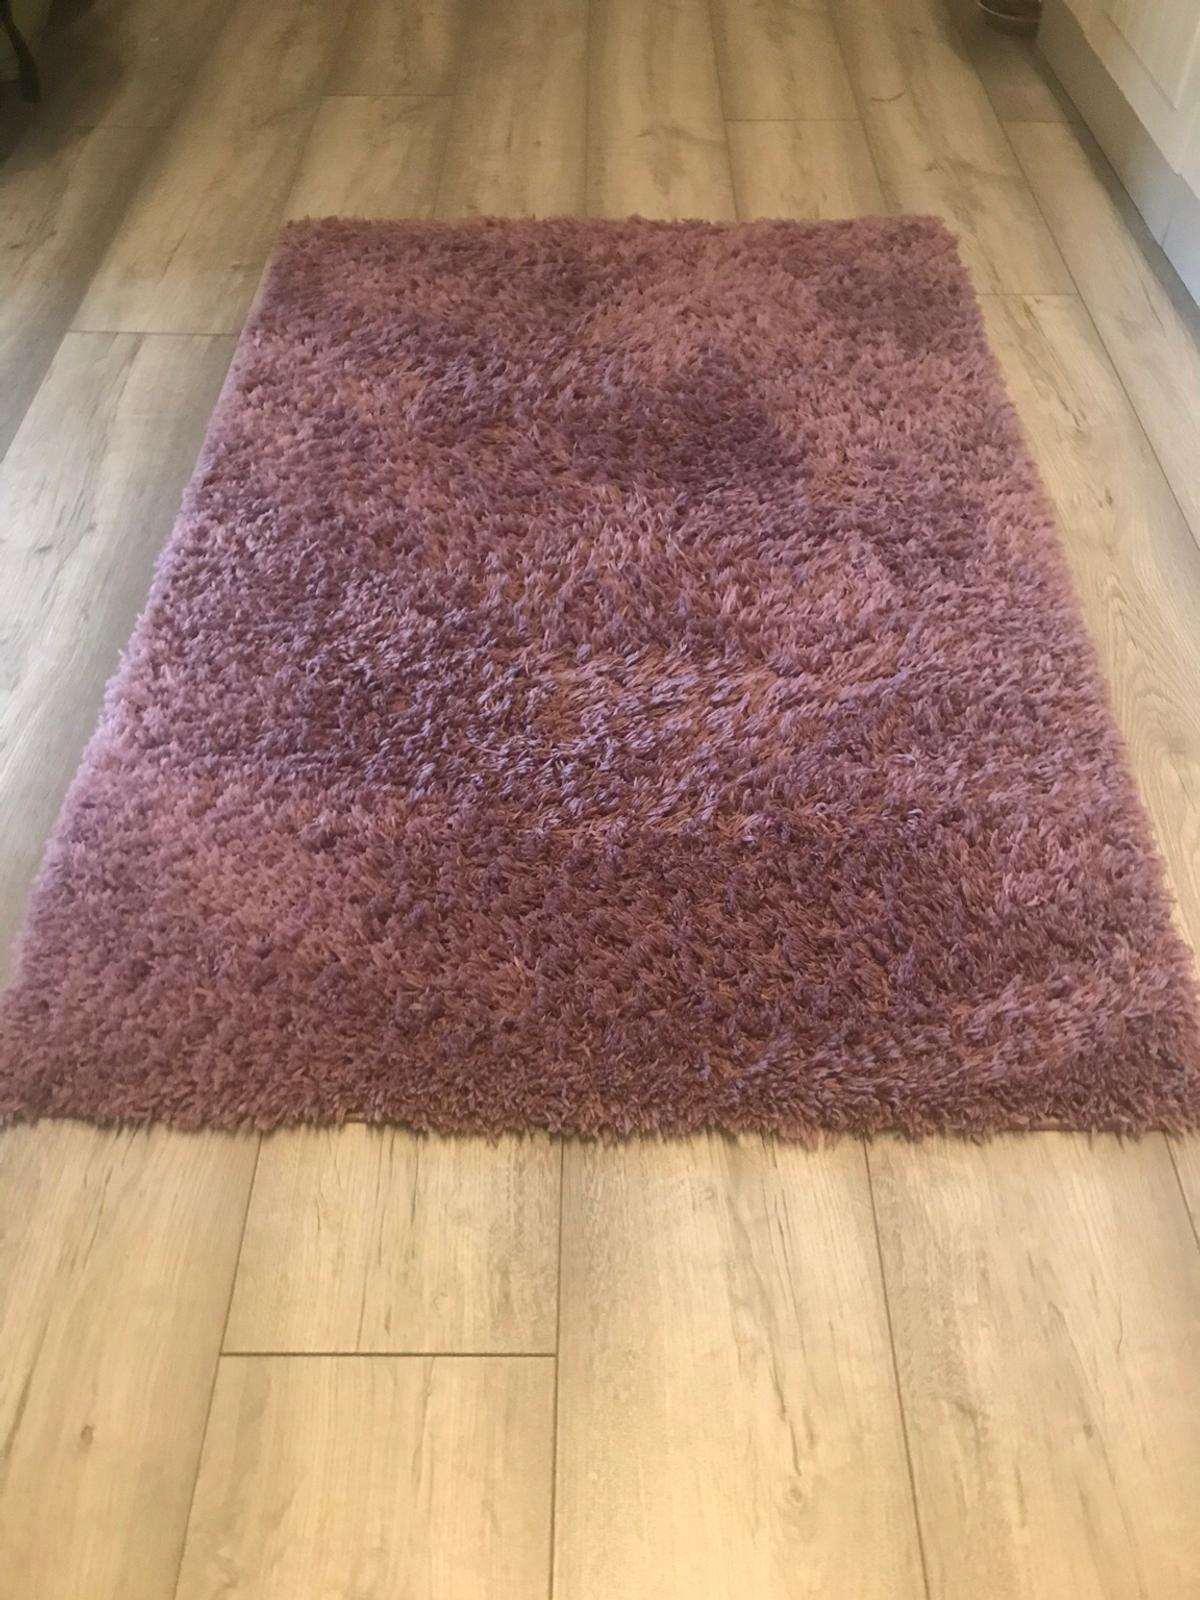 Lilac Mauve Rug From Next In Kt20